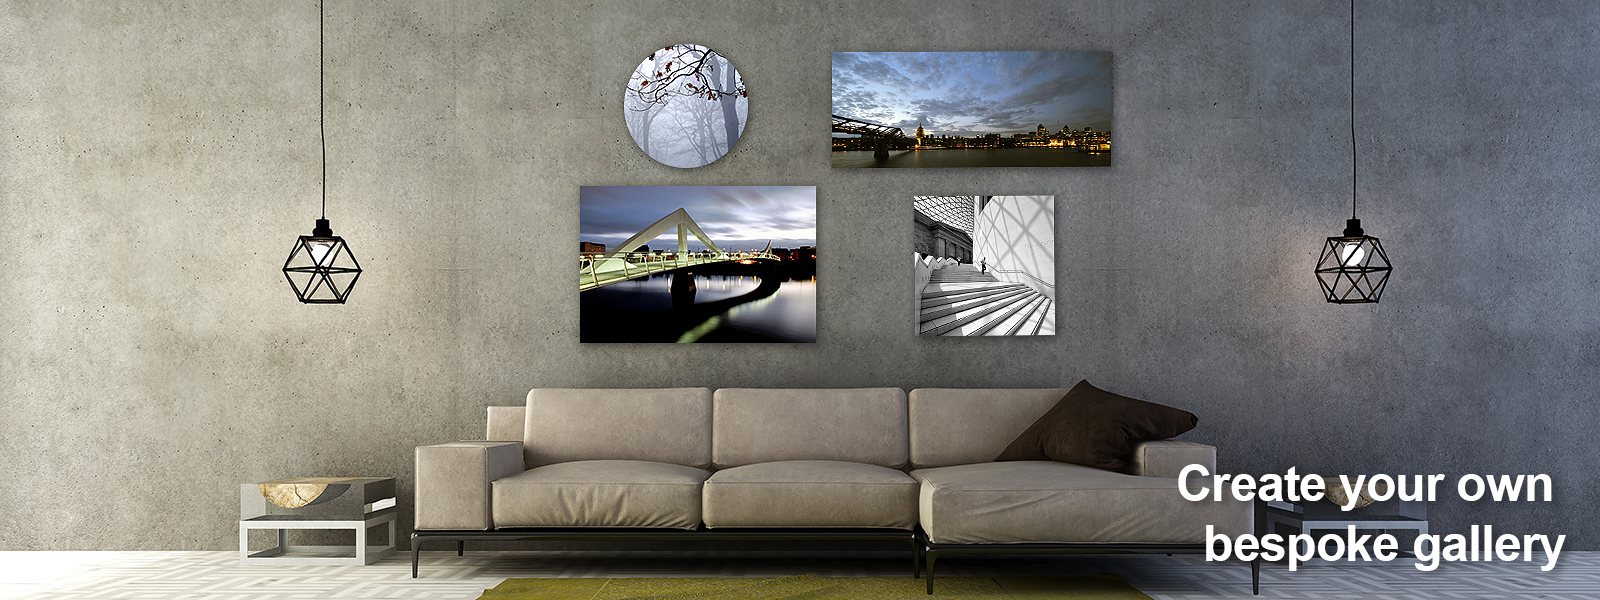 Create your own bespoke gallery slider